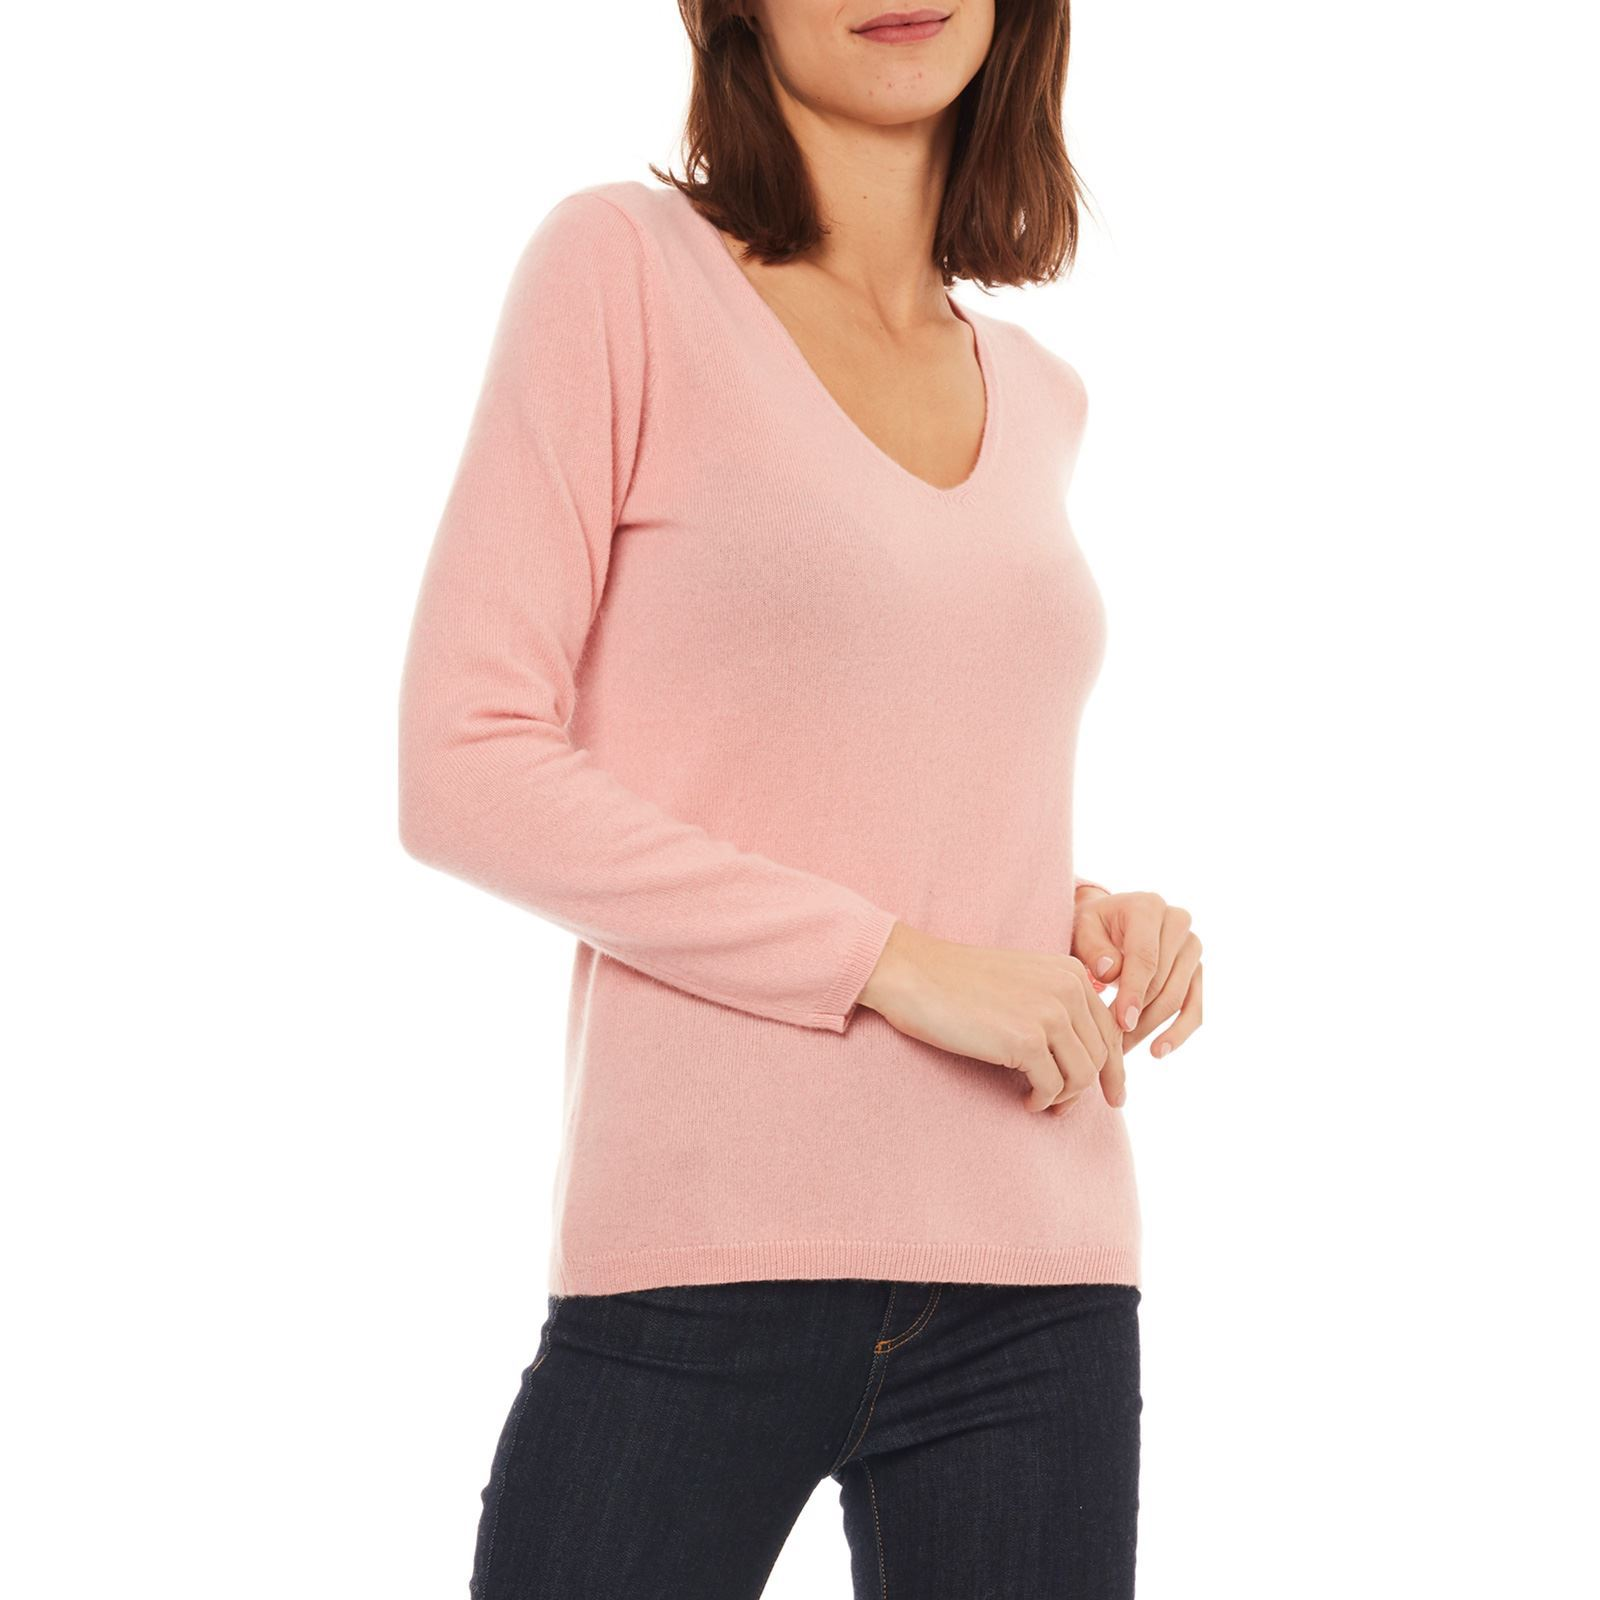 2ee002fddb8 Caroll Pull 100% cachemire - rose clair